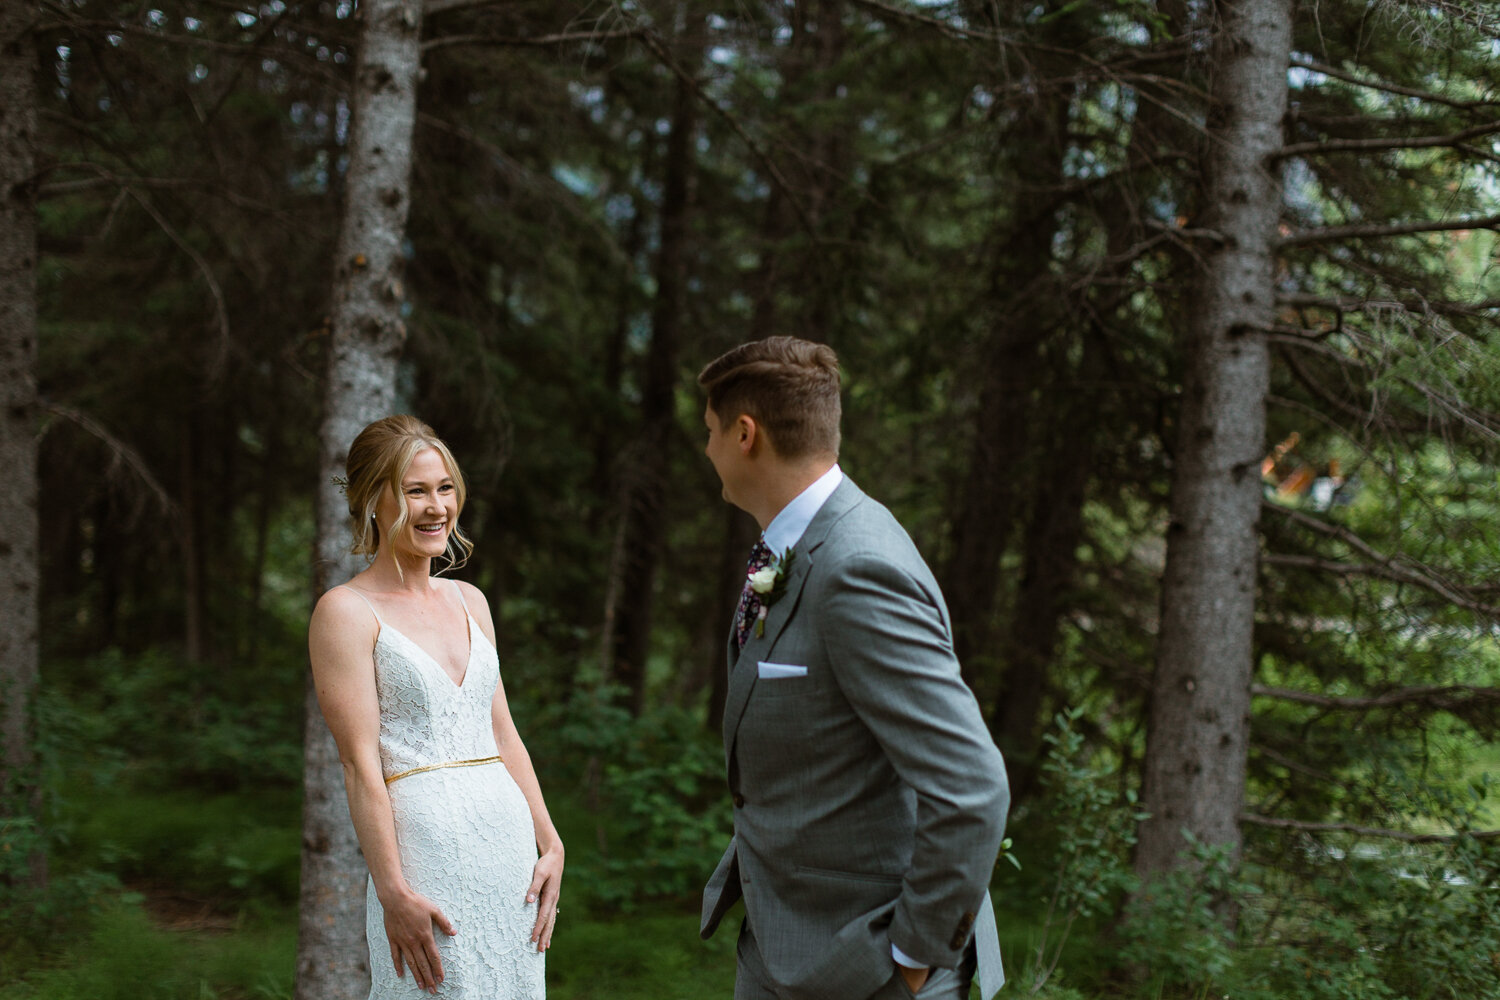 29-Canmore-Alberta-Real-Wedding-Best-Wedding-Photographers-30.JPG